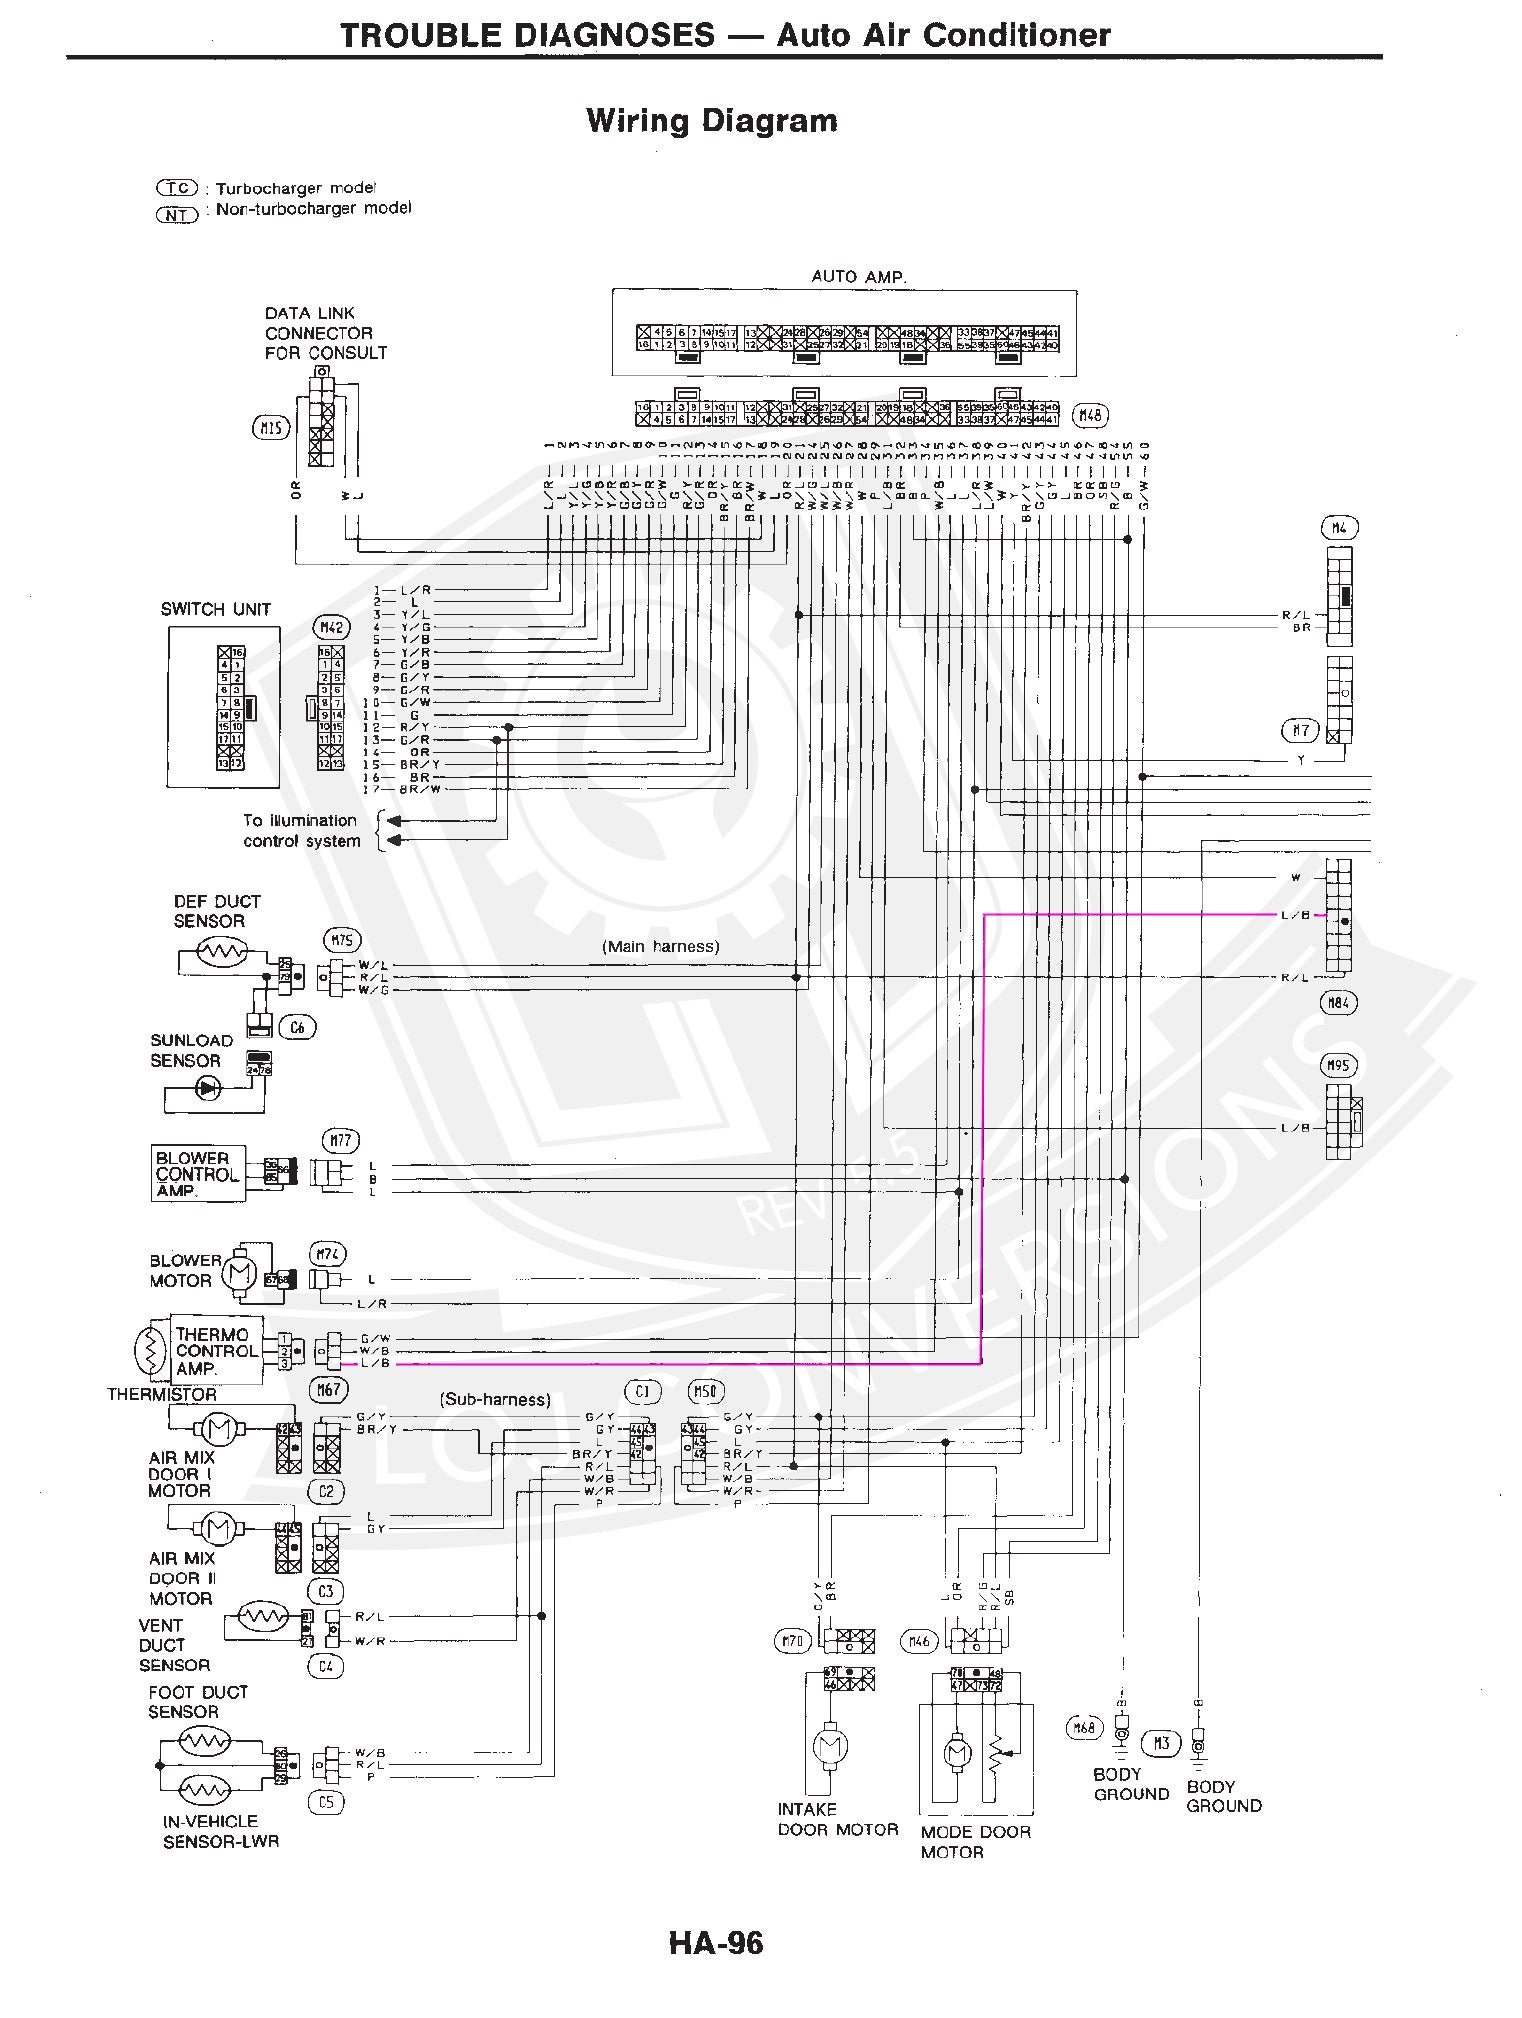 300ZX_AC_Wiring_Engine_Swap_01?13361147458220527412 wiring the ac in a 300zx engine conversion loj conversions 300zx engine wiring harness diagram at alyssarenee.co